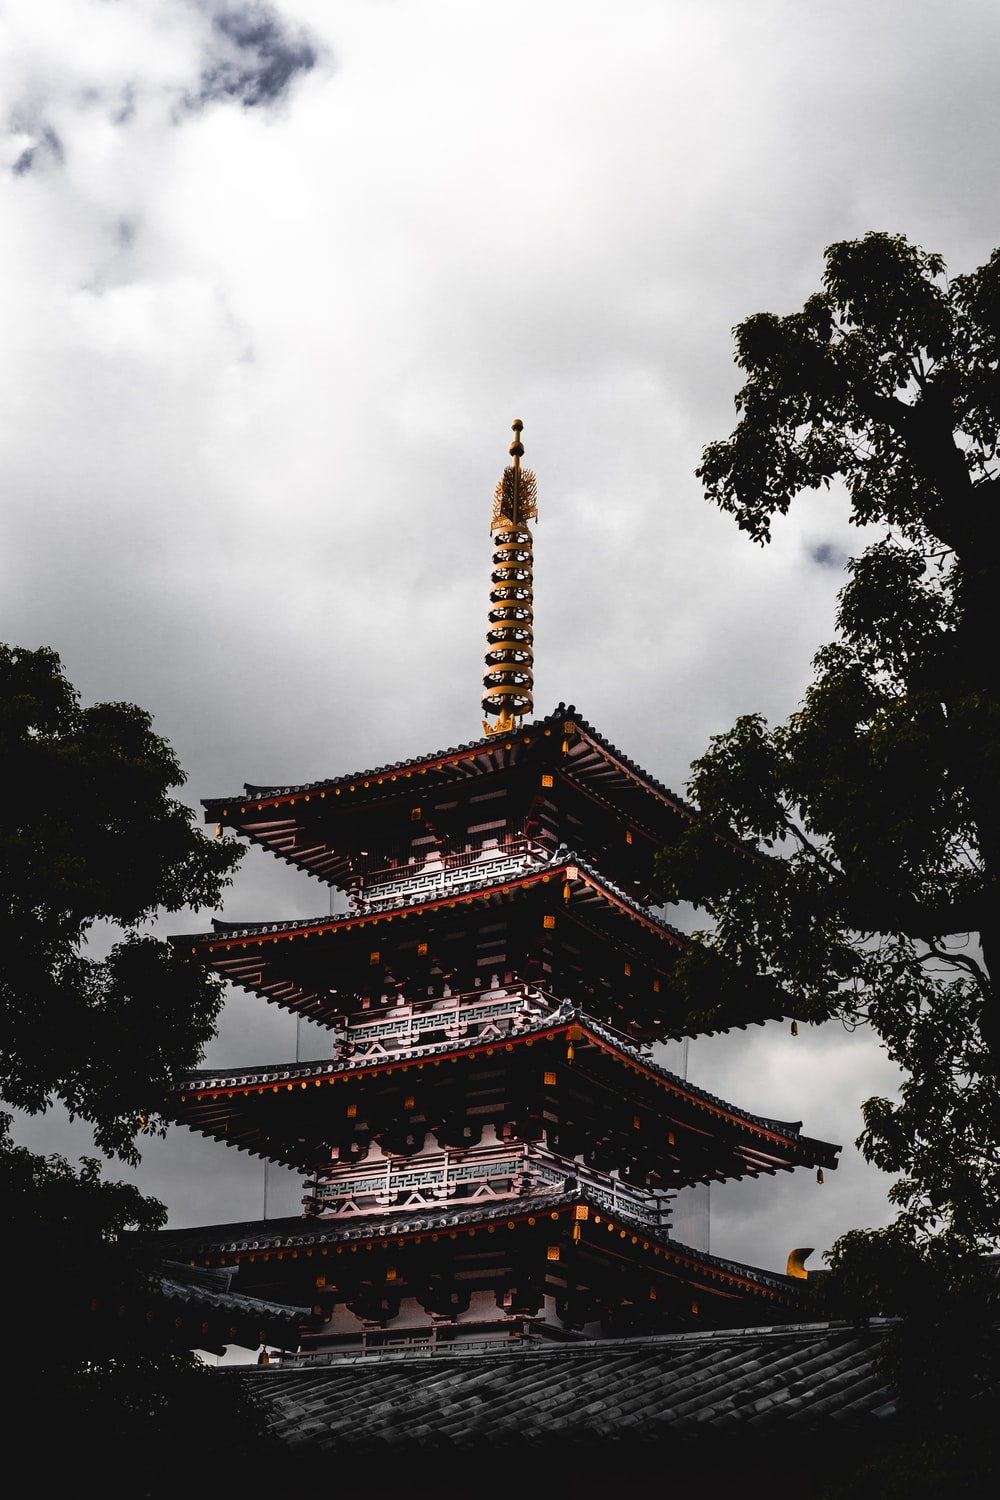 brown and white pagoda temple